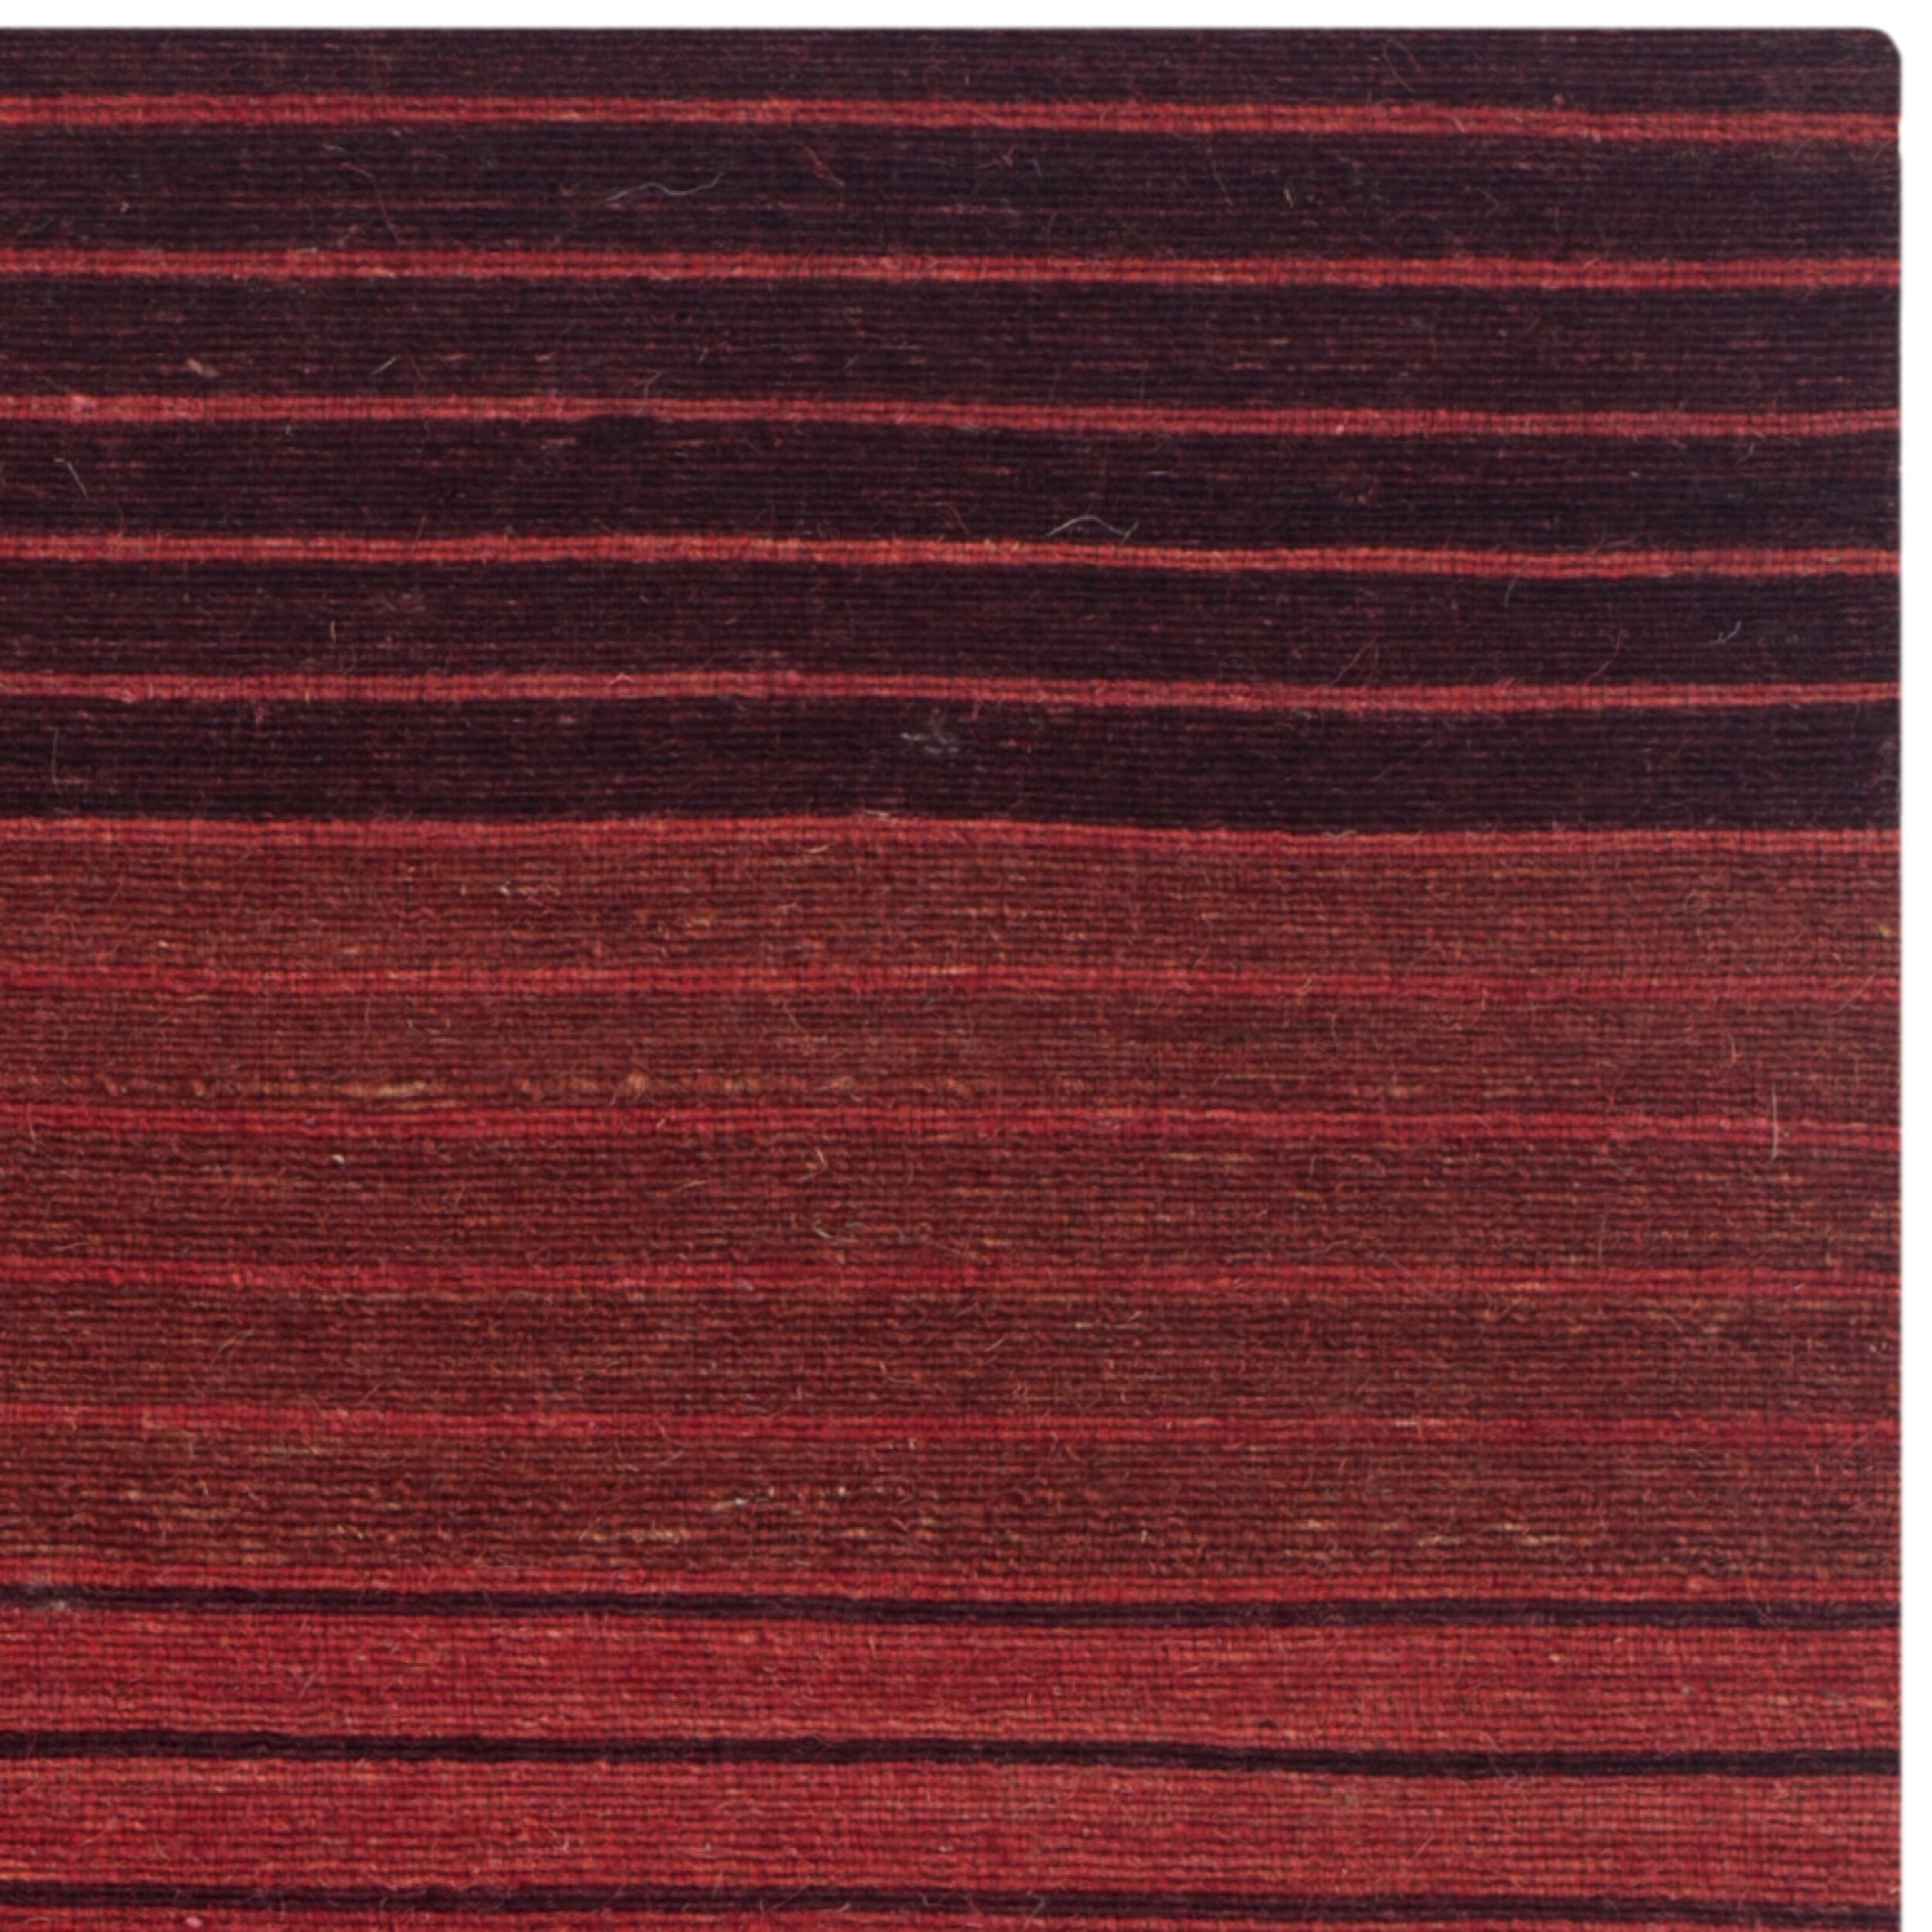 Safavieh marbella striped contemporary red area rug for Red area rugs contemporary